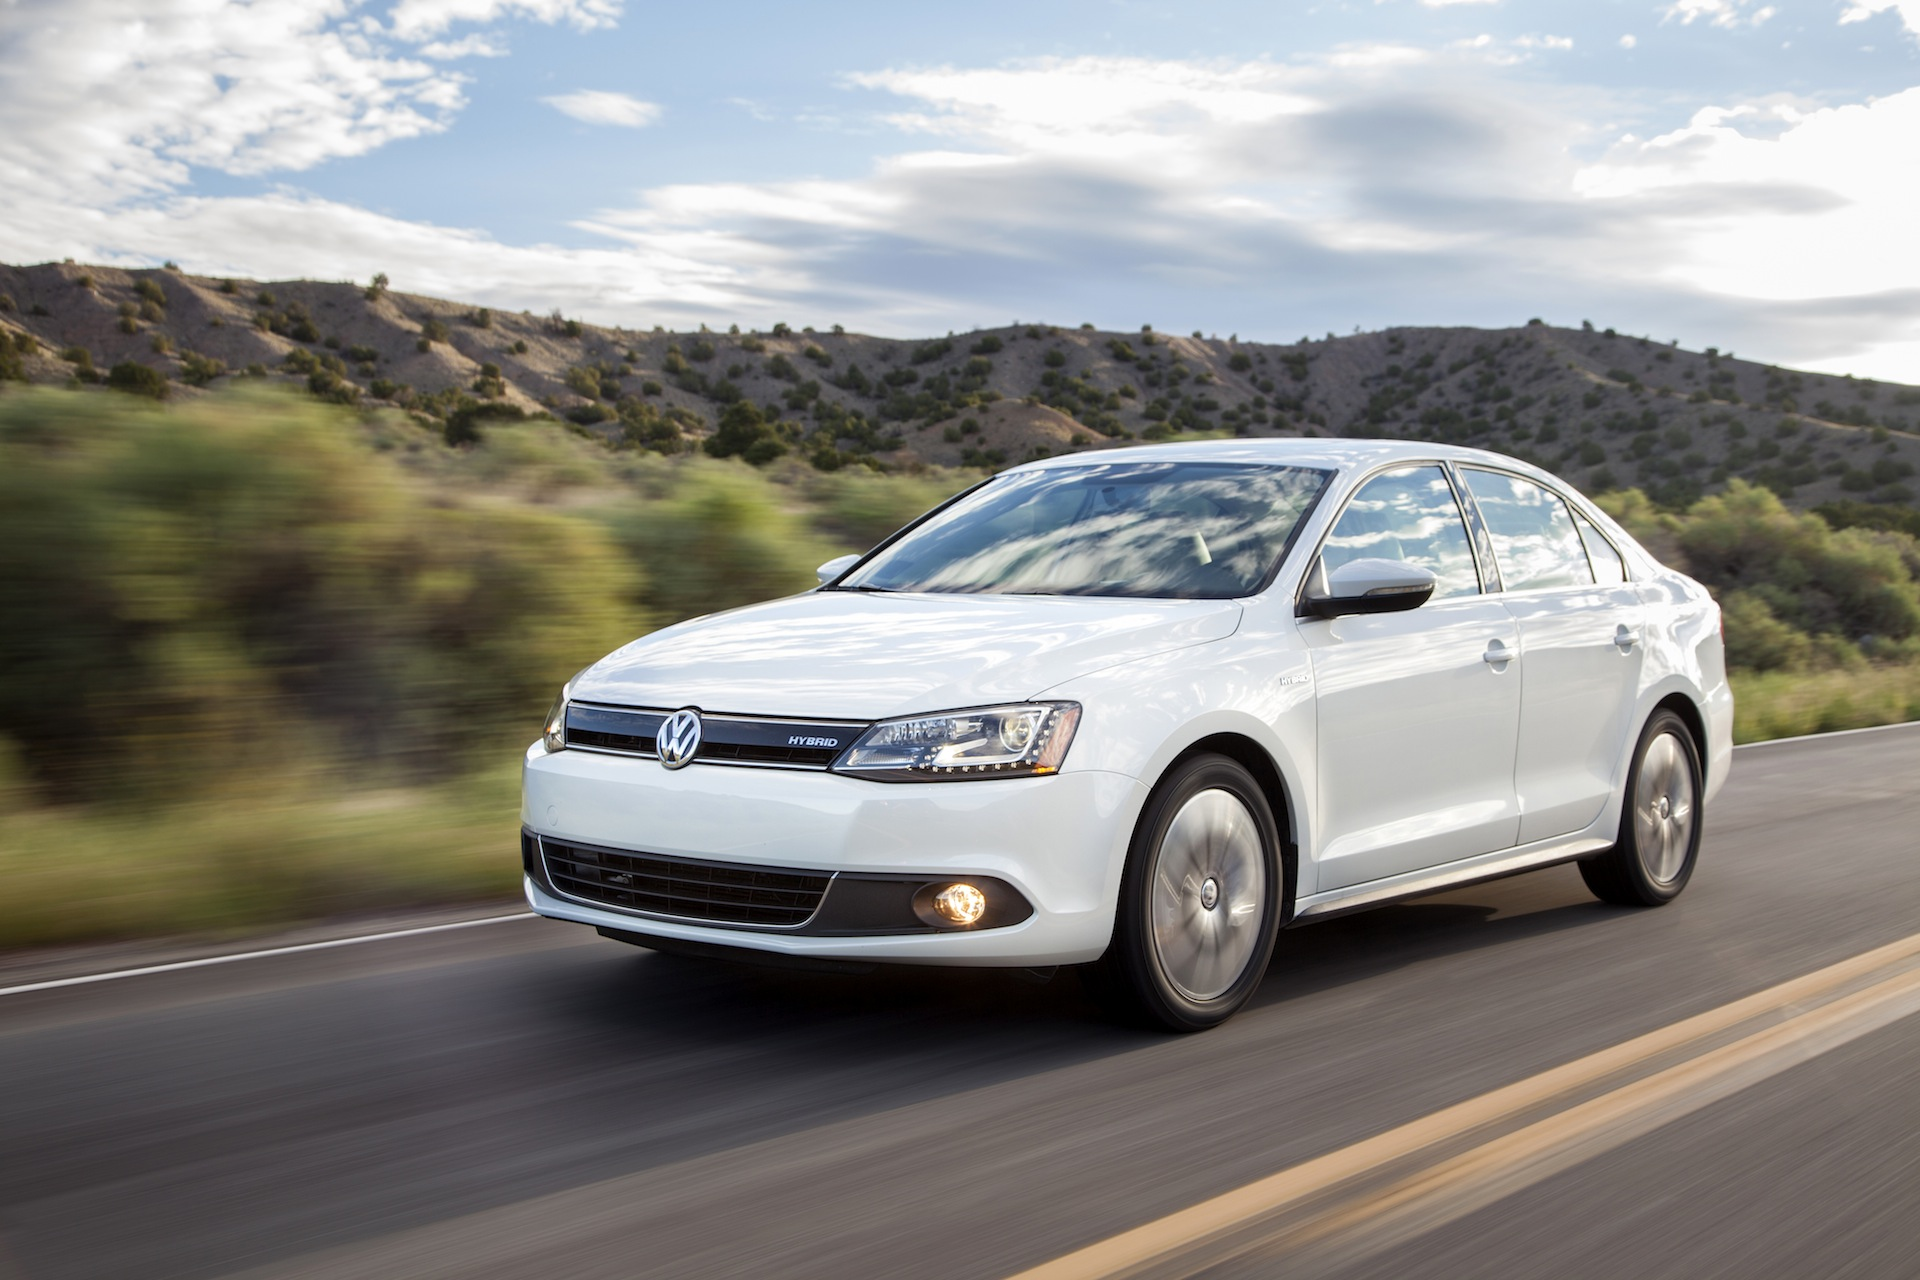 2014 volkswagen jetta vw gas mileage the car connection. Black Bedroom Furniture Sets. Home Design Ideas